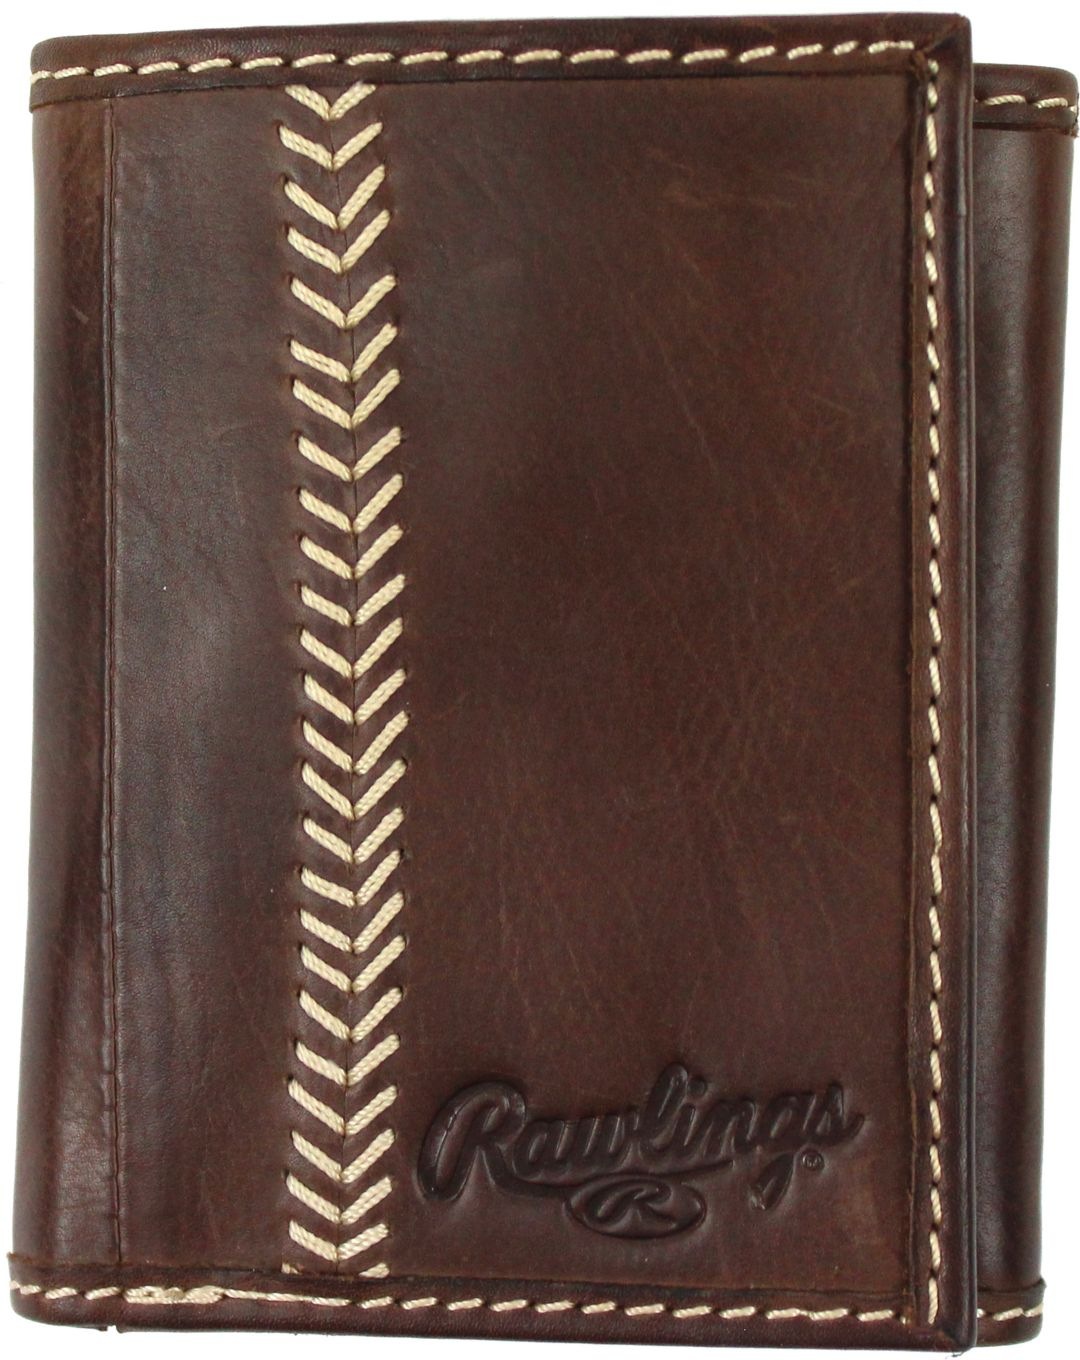 20d5574dfce1 Rawlings Baseball Stitch Leather Trifold Wallet